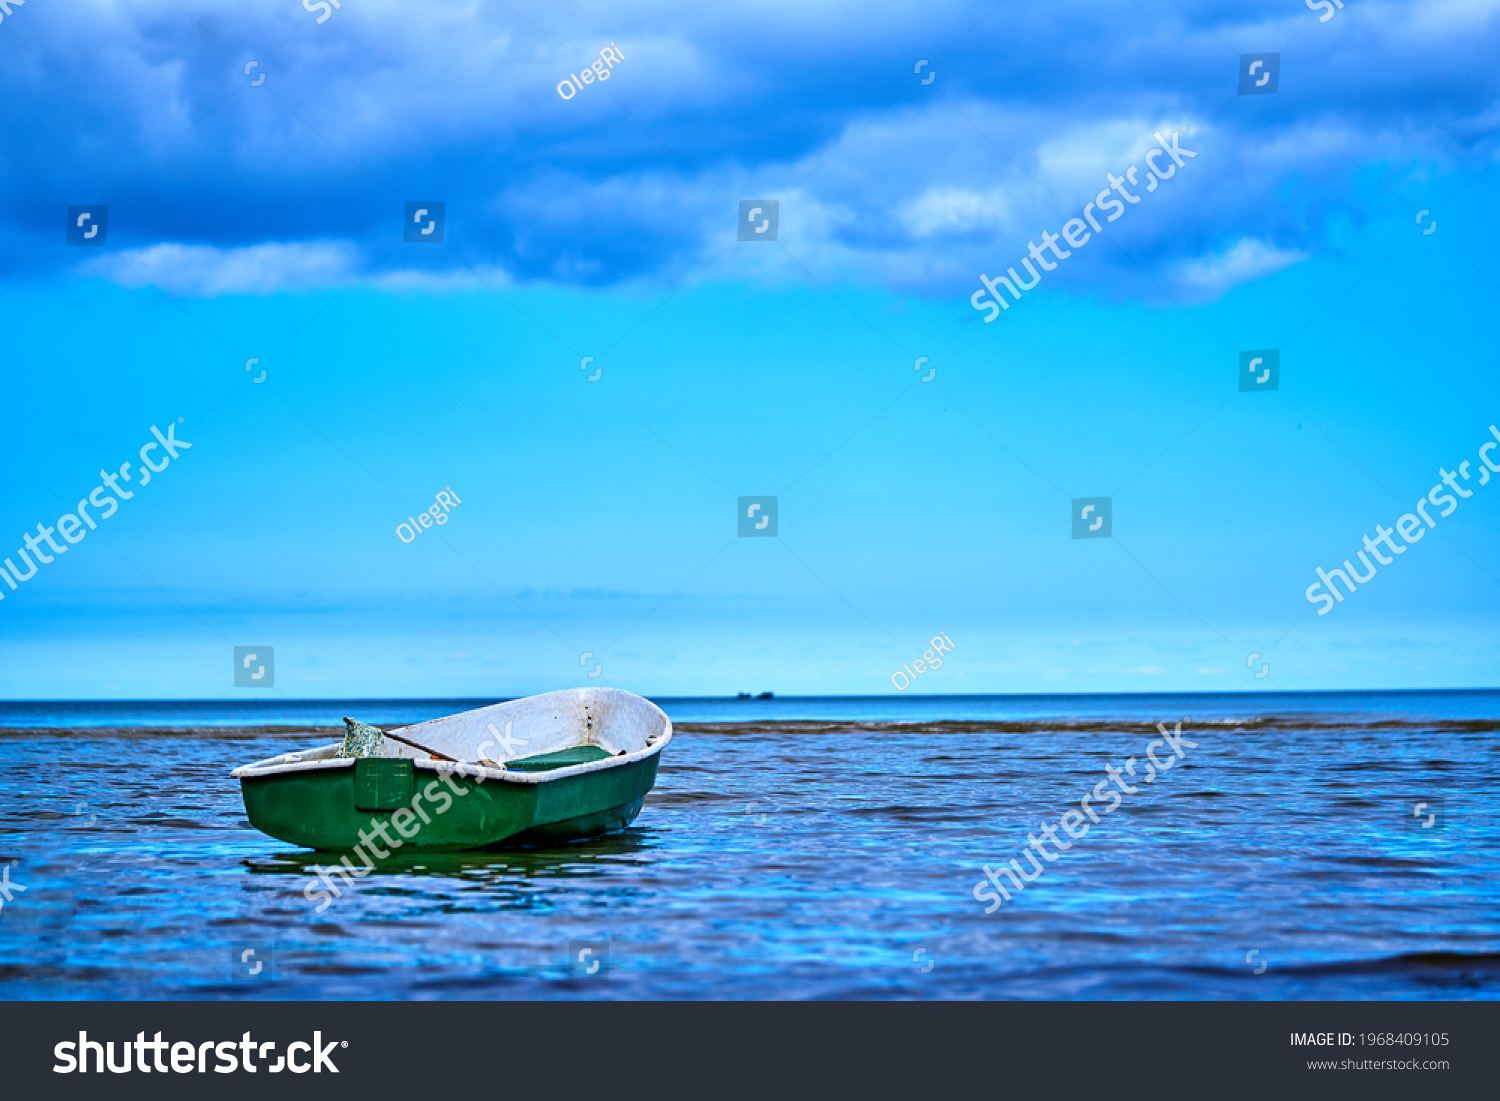 Small fishing boat with fishing net and equipment #1968409105